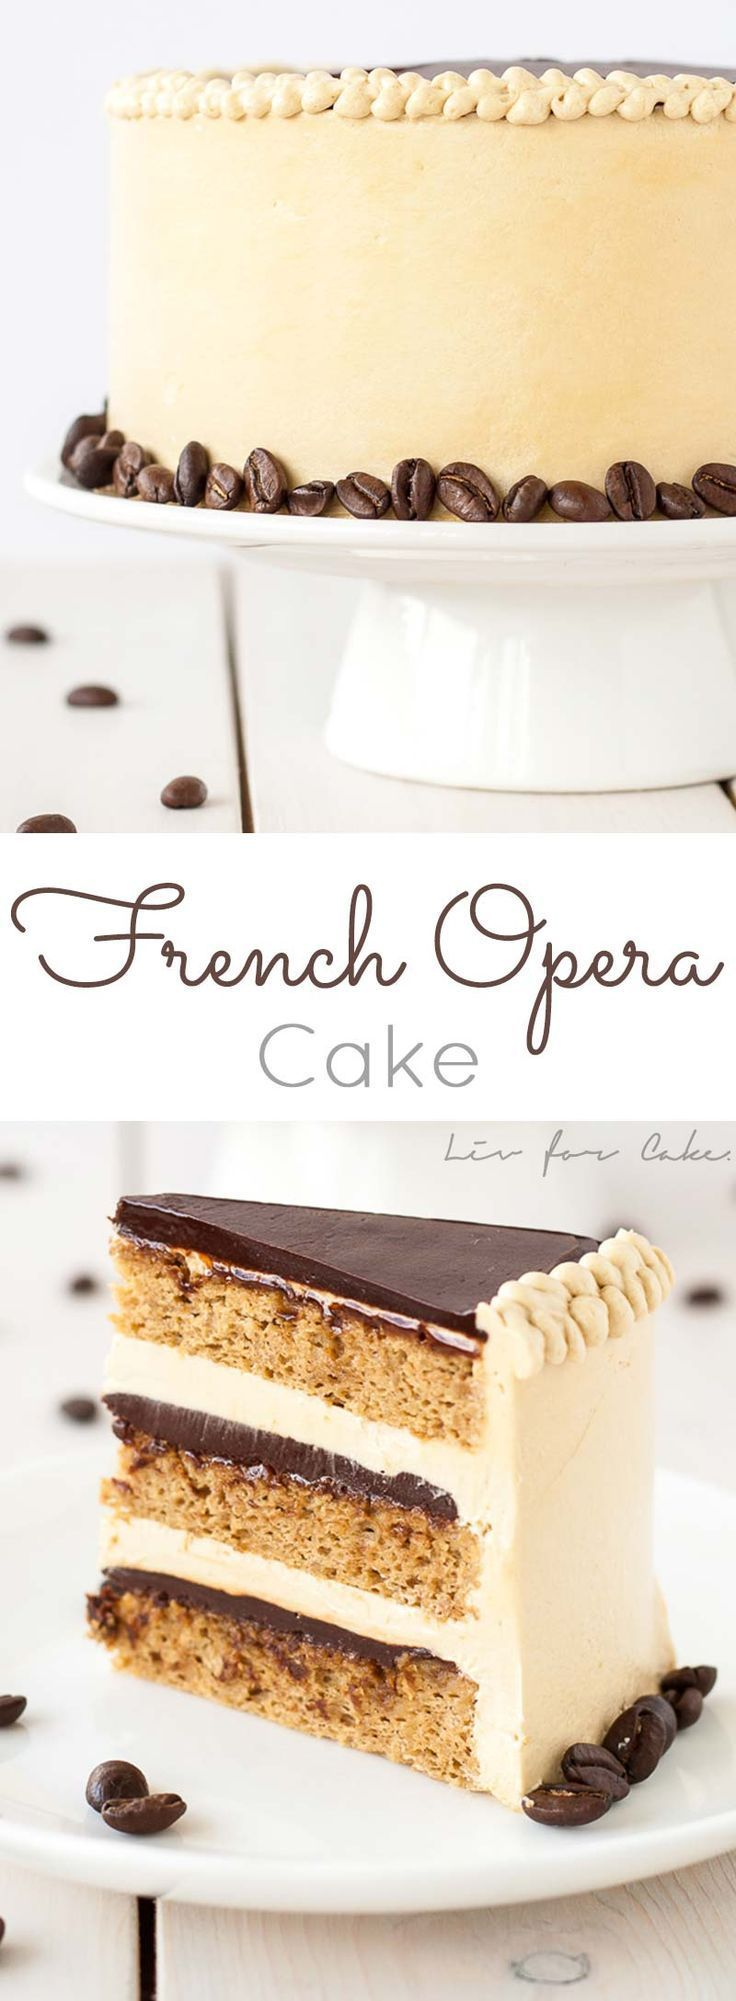 A modern take on a French classic, this decadent Opera cake is rich, chocolatey, and packed with espresso flavour.   http://livforcake.com